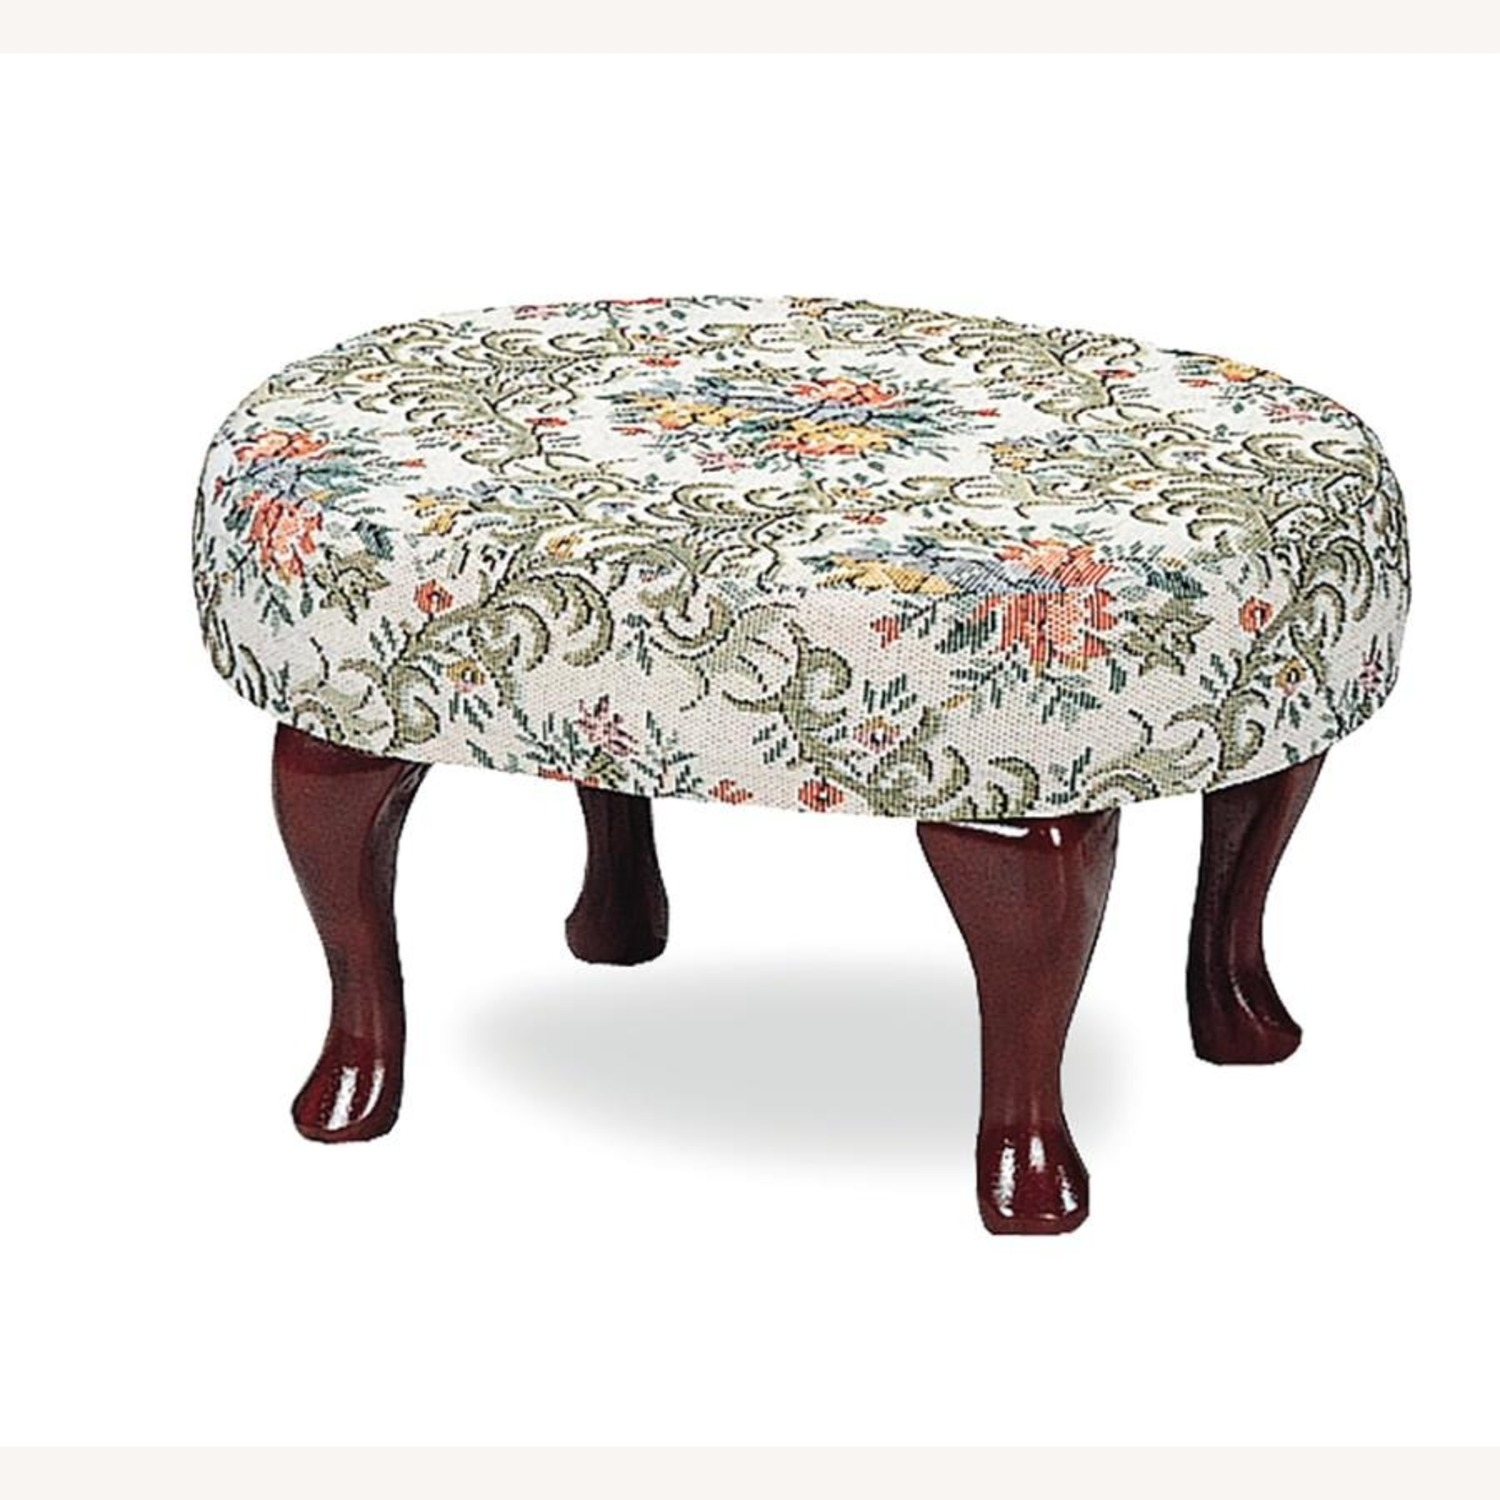 Mid Century Stool In Multi-Color Patterned Finish - image-3